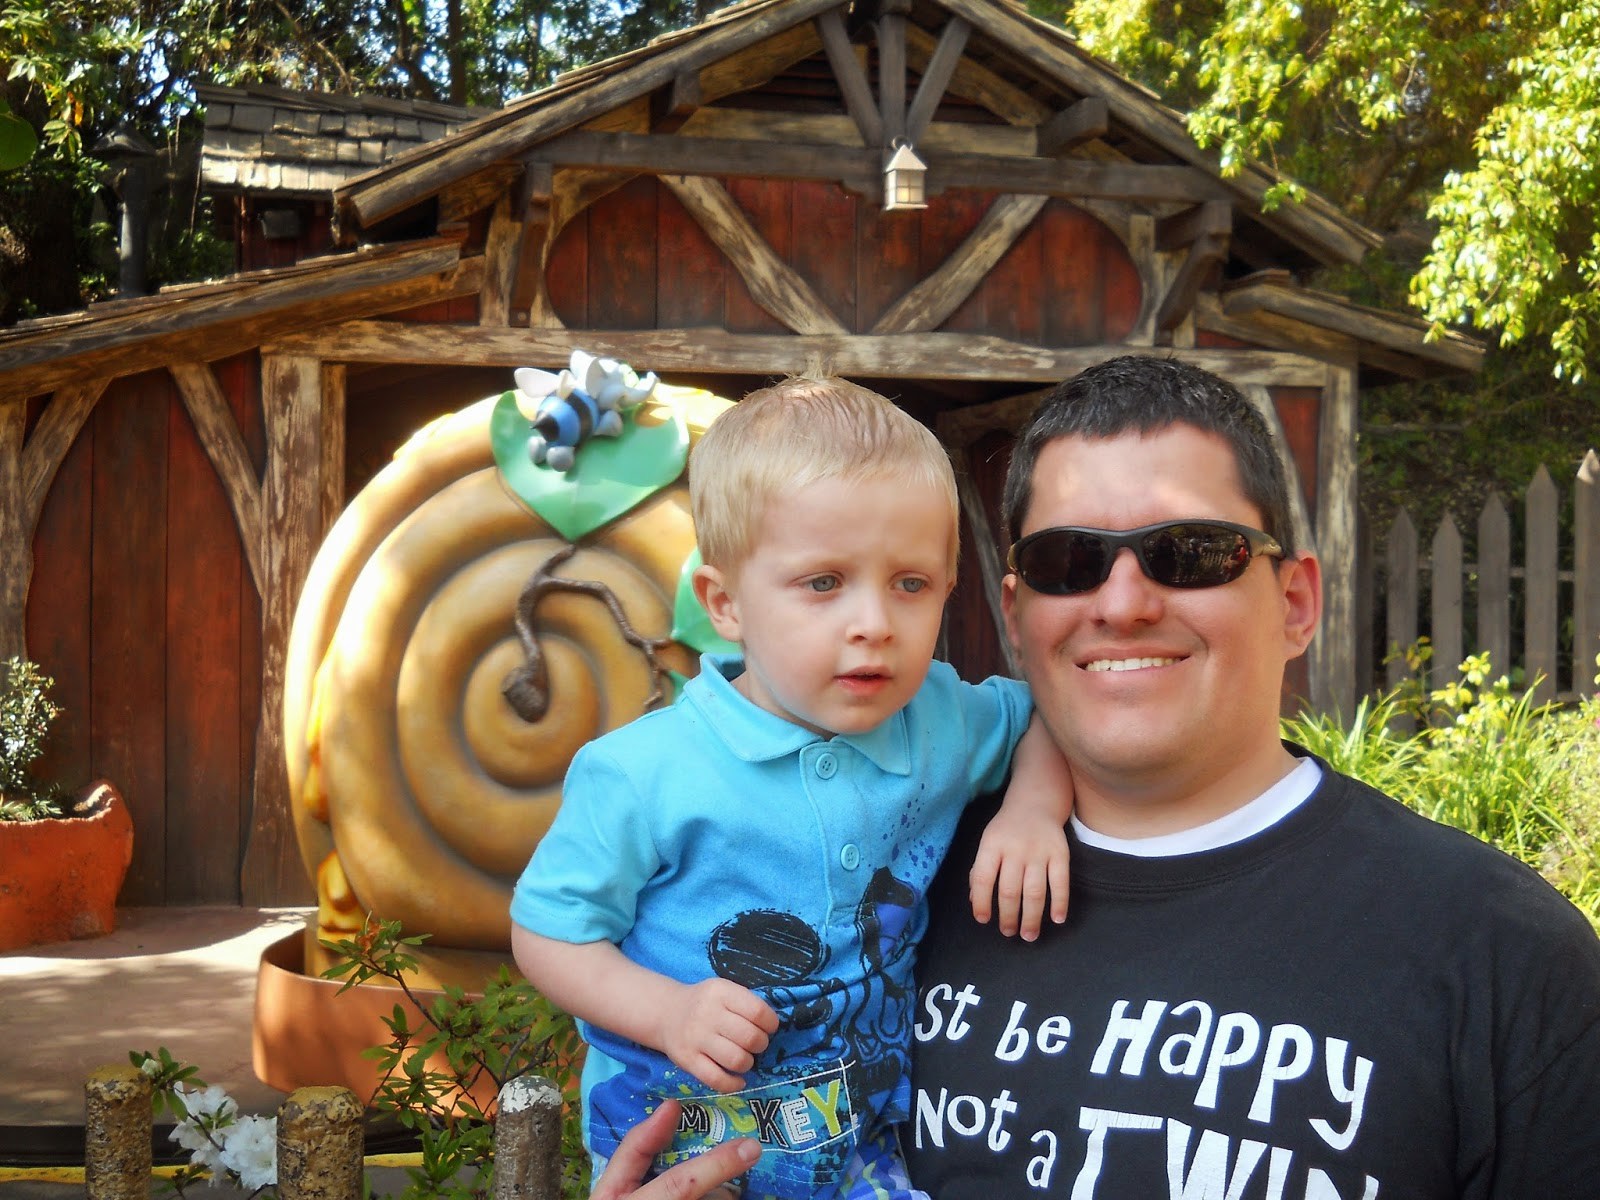 Little kids enjoy Winnie the Pooh and other rides at Disneyland. LoveOurDisney.com